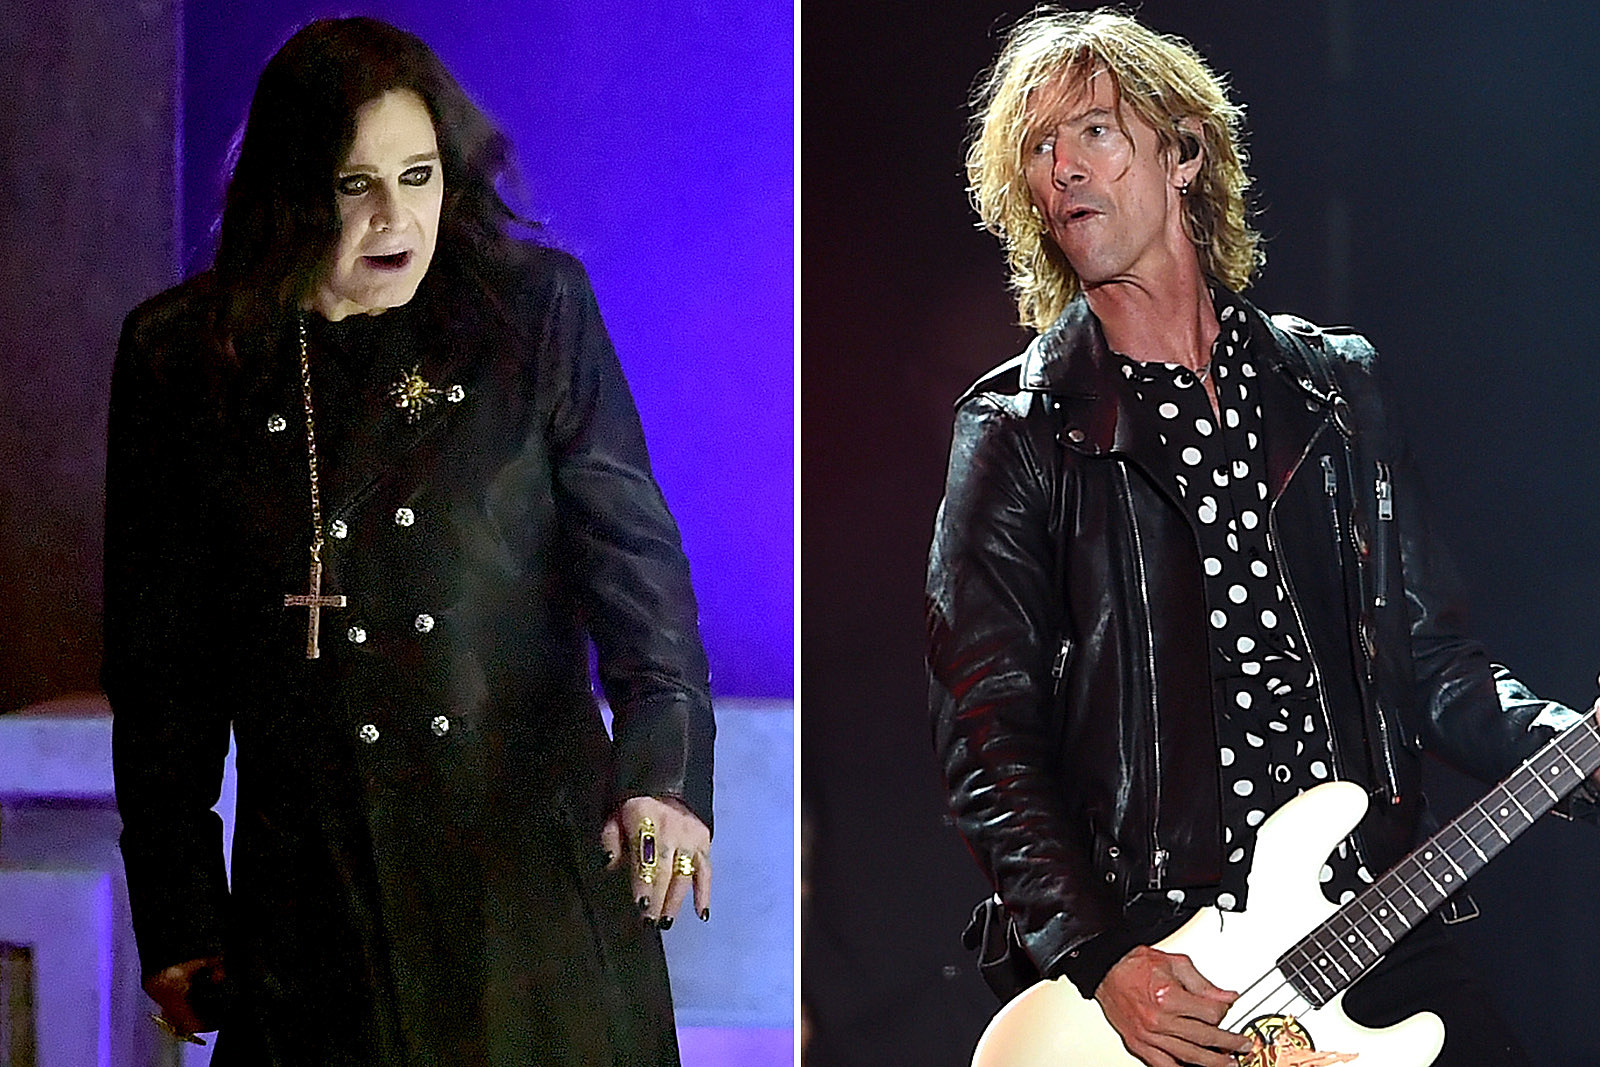 Ozzy Osbourne Album Could Have Gone 'Sideways in a Hot Second' Says Duff McKagan